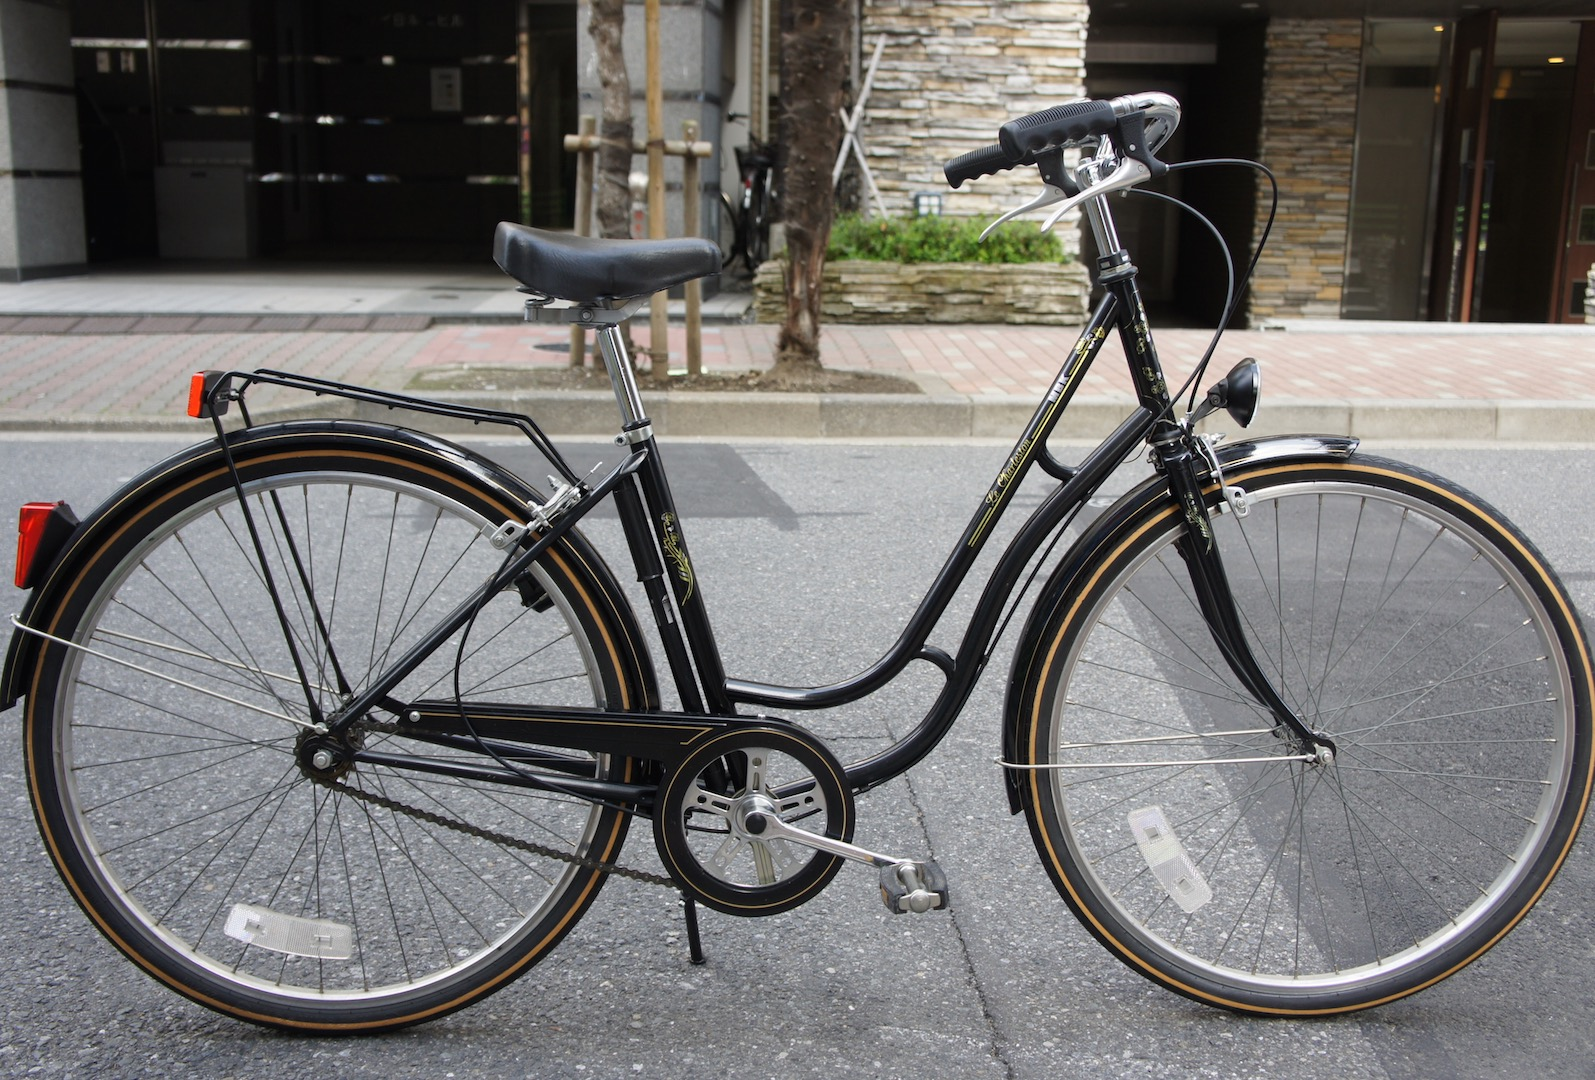 MBK motobecane エムビーケー Le Charleston Retro cycle